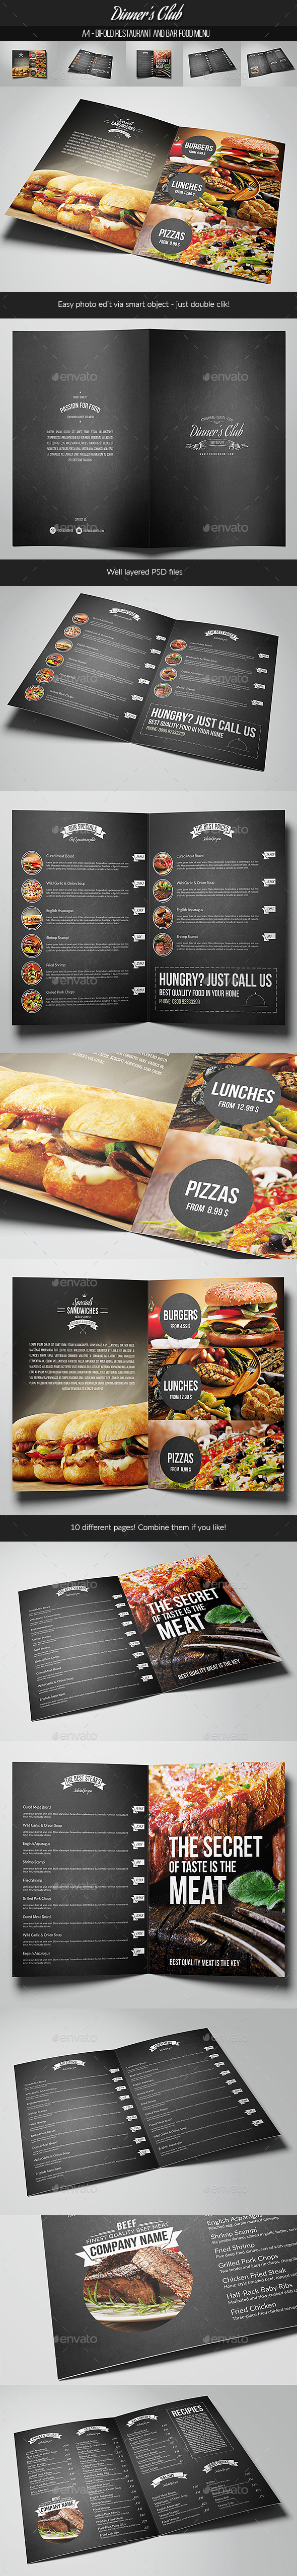 Restaurant & Bar Food Menu  - Food Menus Print Templates